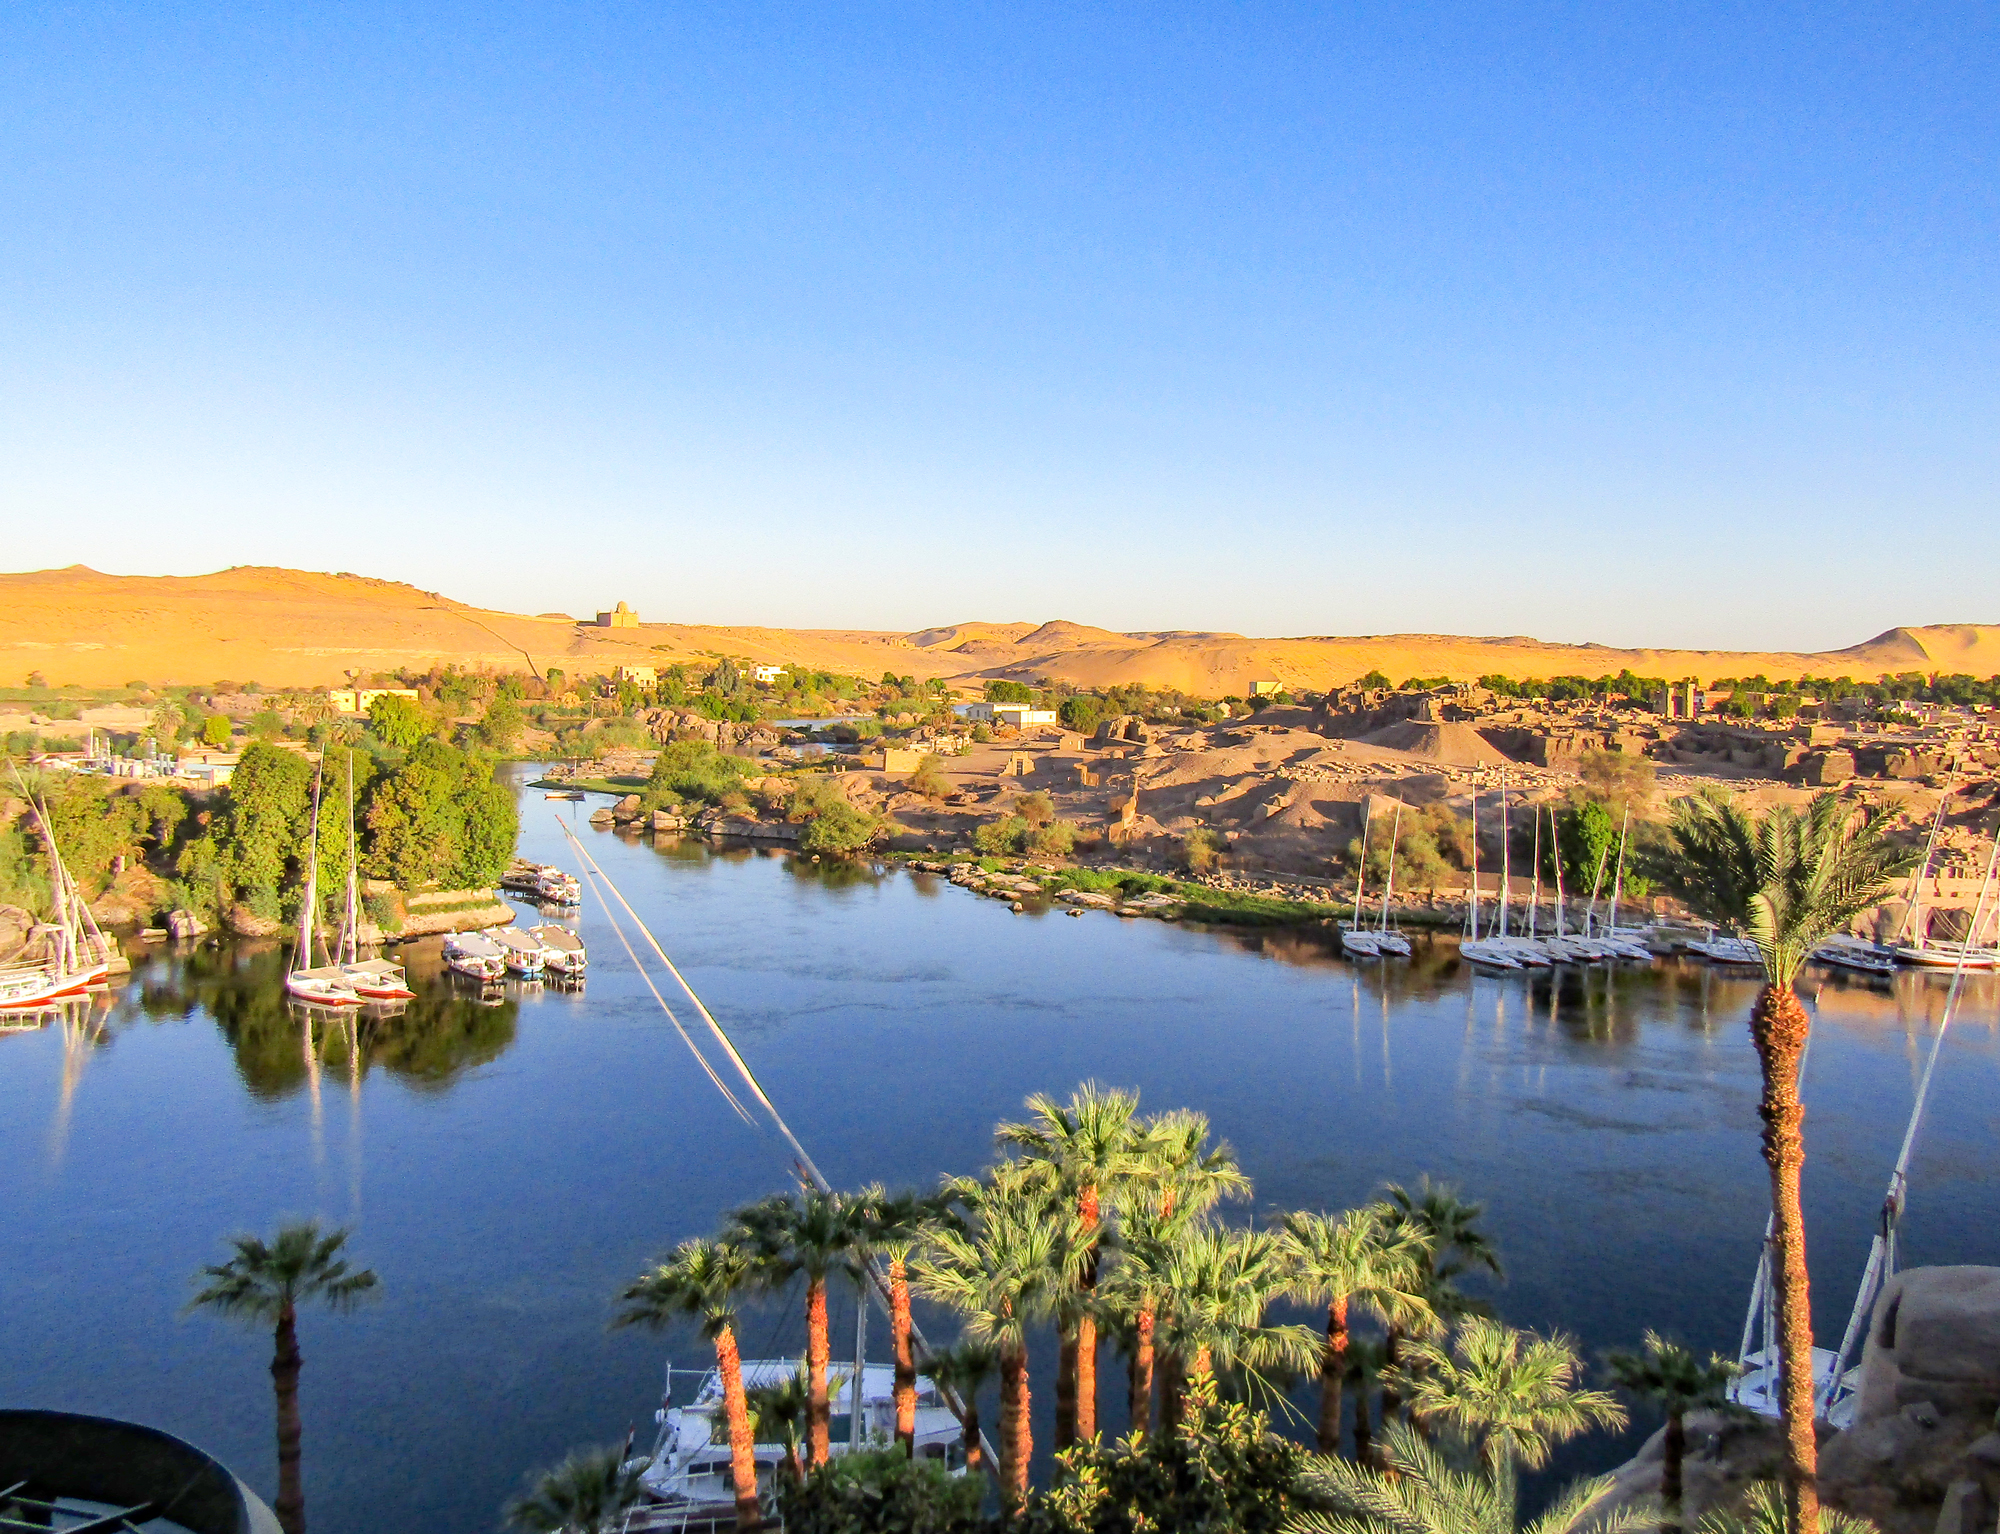 First Cataracts in the Nile, Aswan, Egypt